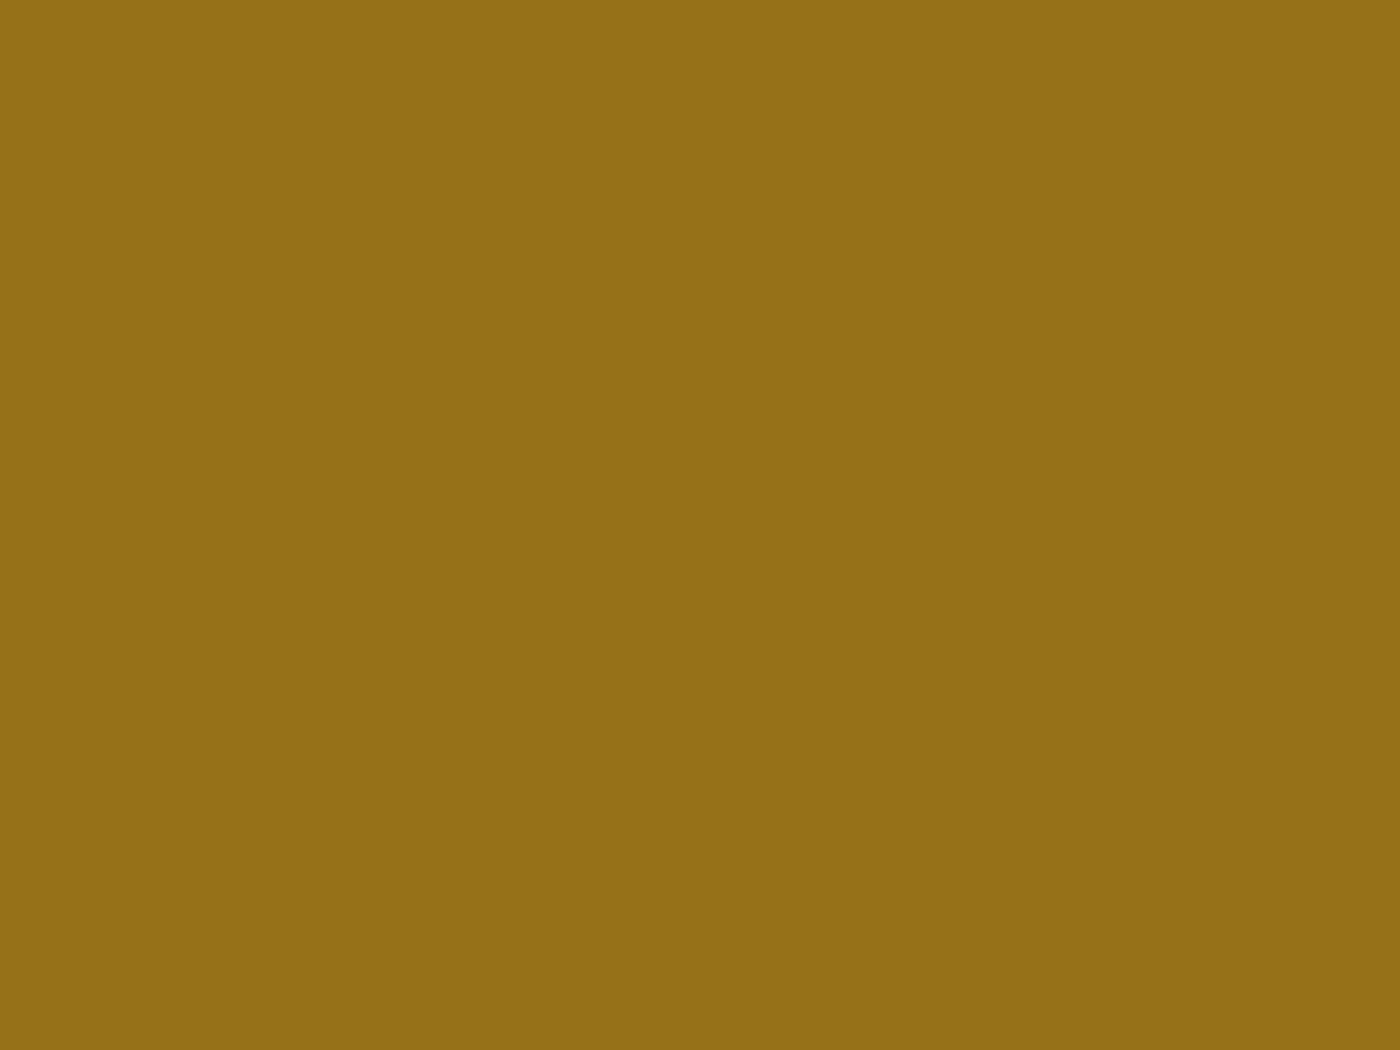 1400x1050 Drab Solid Color Background